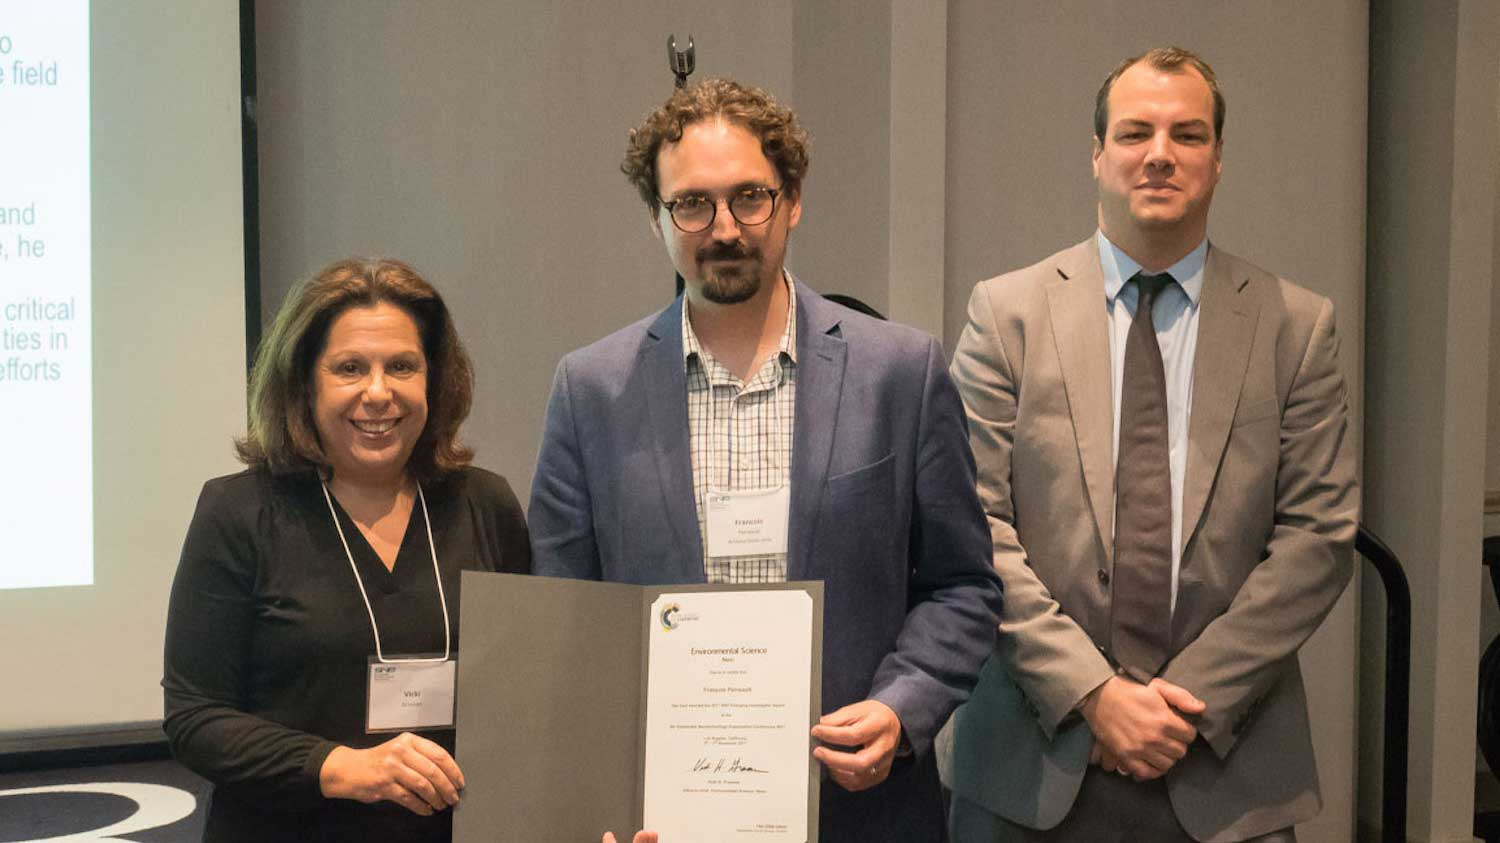 Assistant Professor Francois Perreault is shown receiving an award for advances in nanotechnology